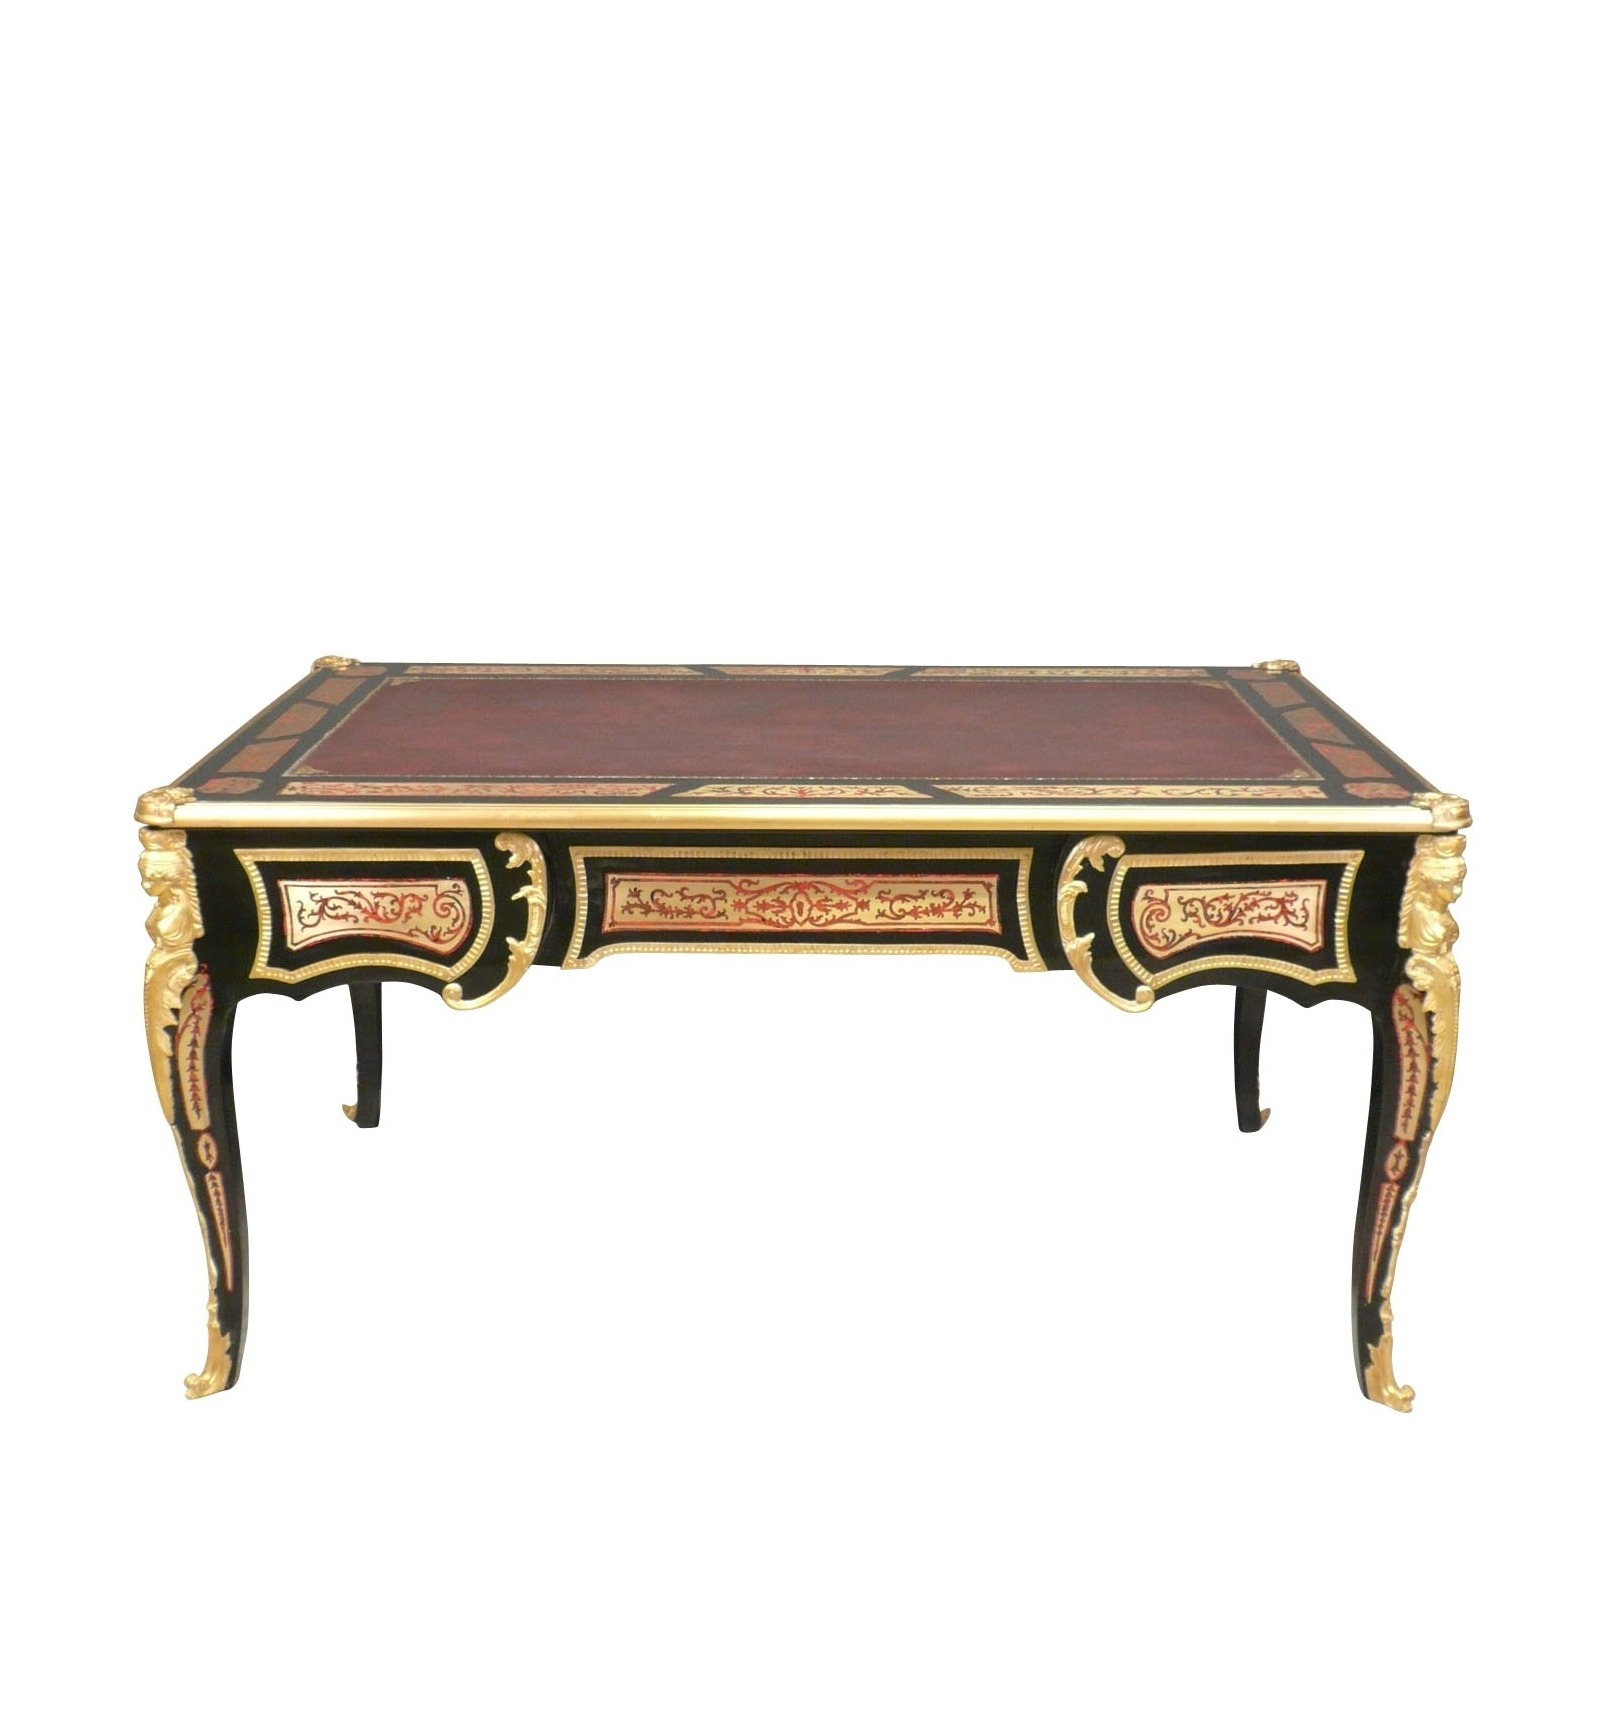 Desk Louis XV Boulle - style Furniture and art deco